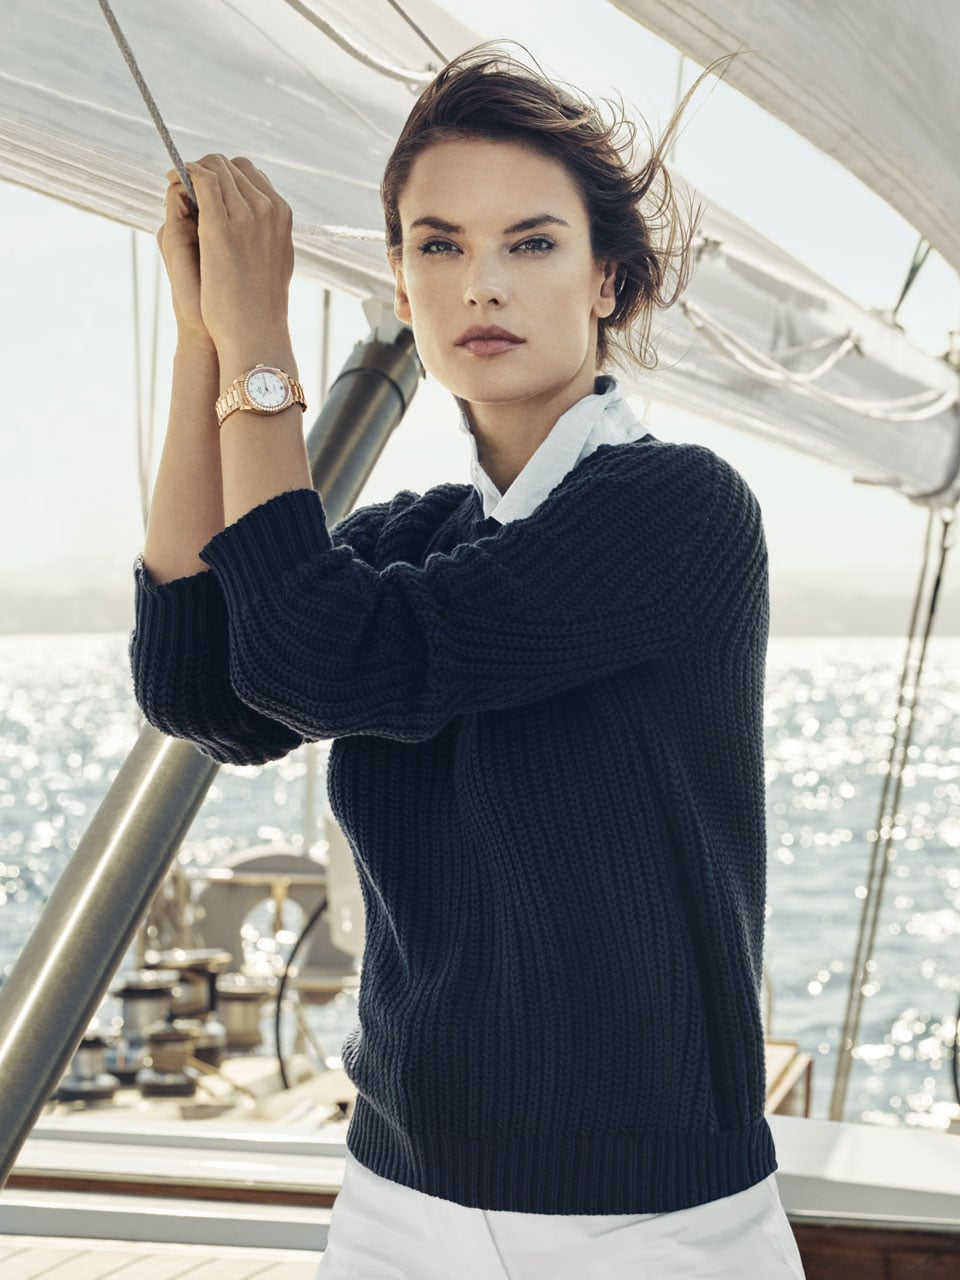 Alessandra Ambrioso standing on the deck of a boat, wearing an Aqua Terra Ladies watch.